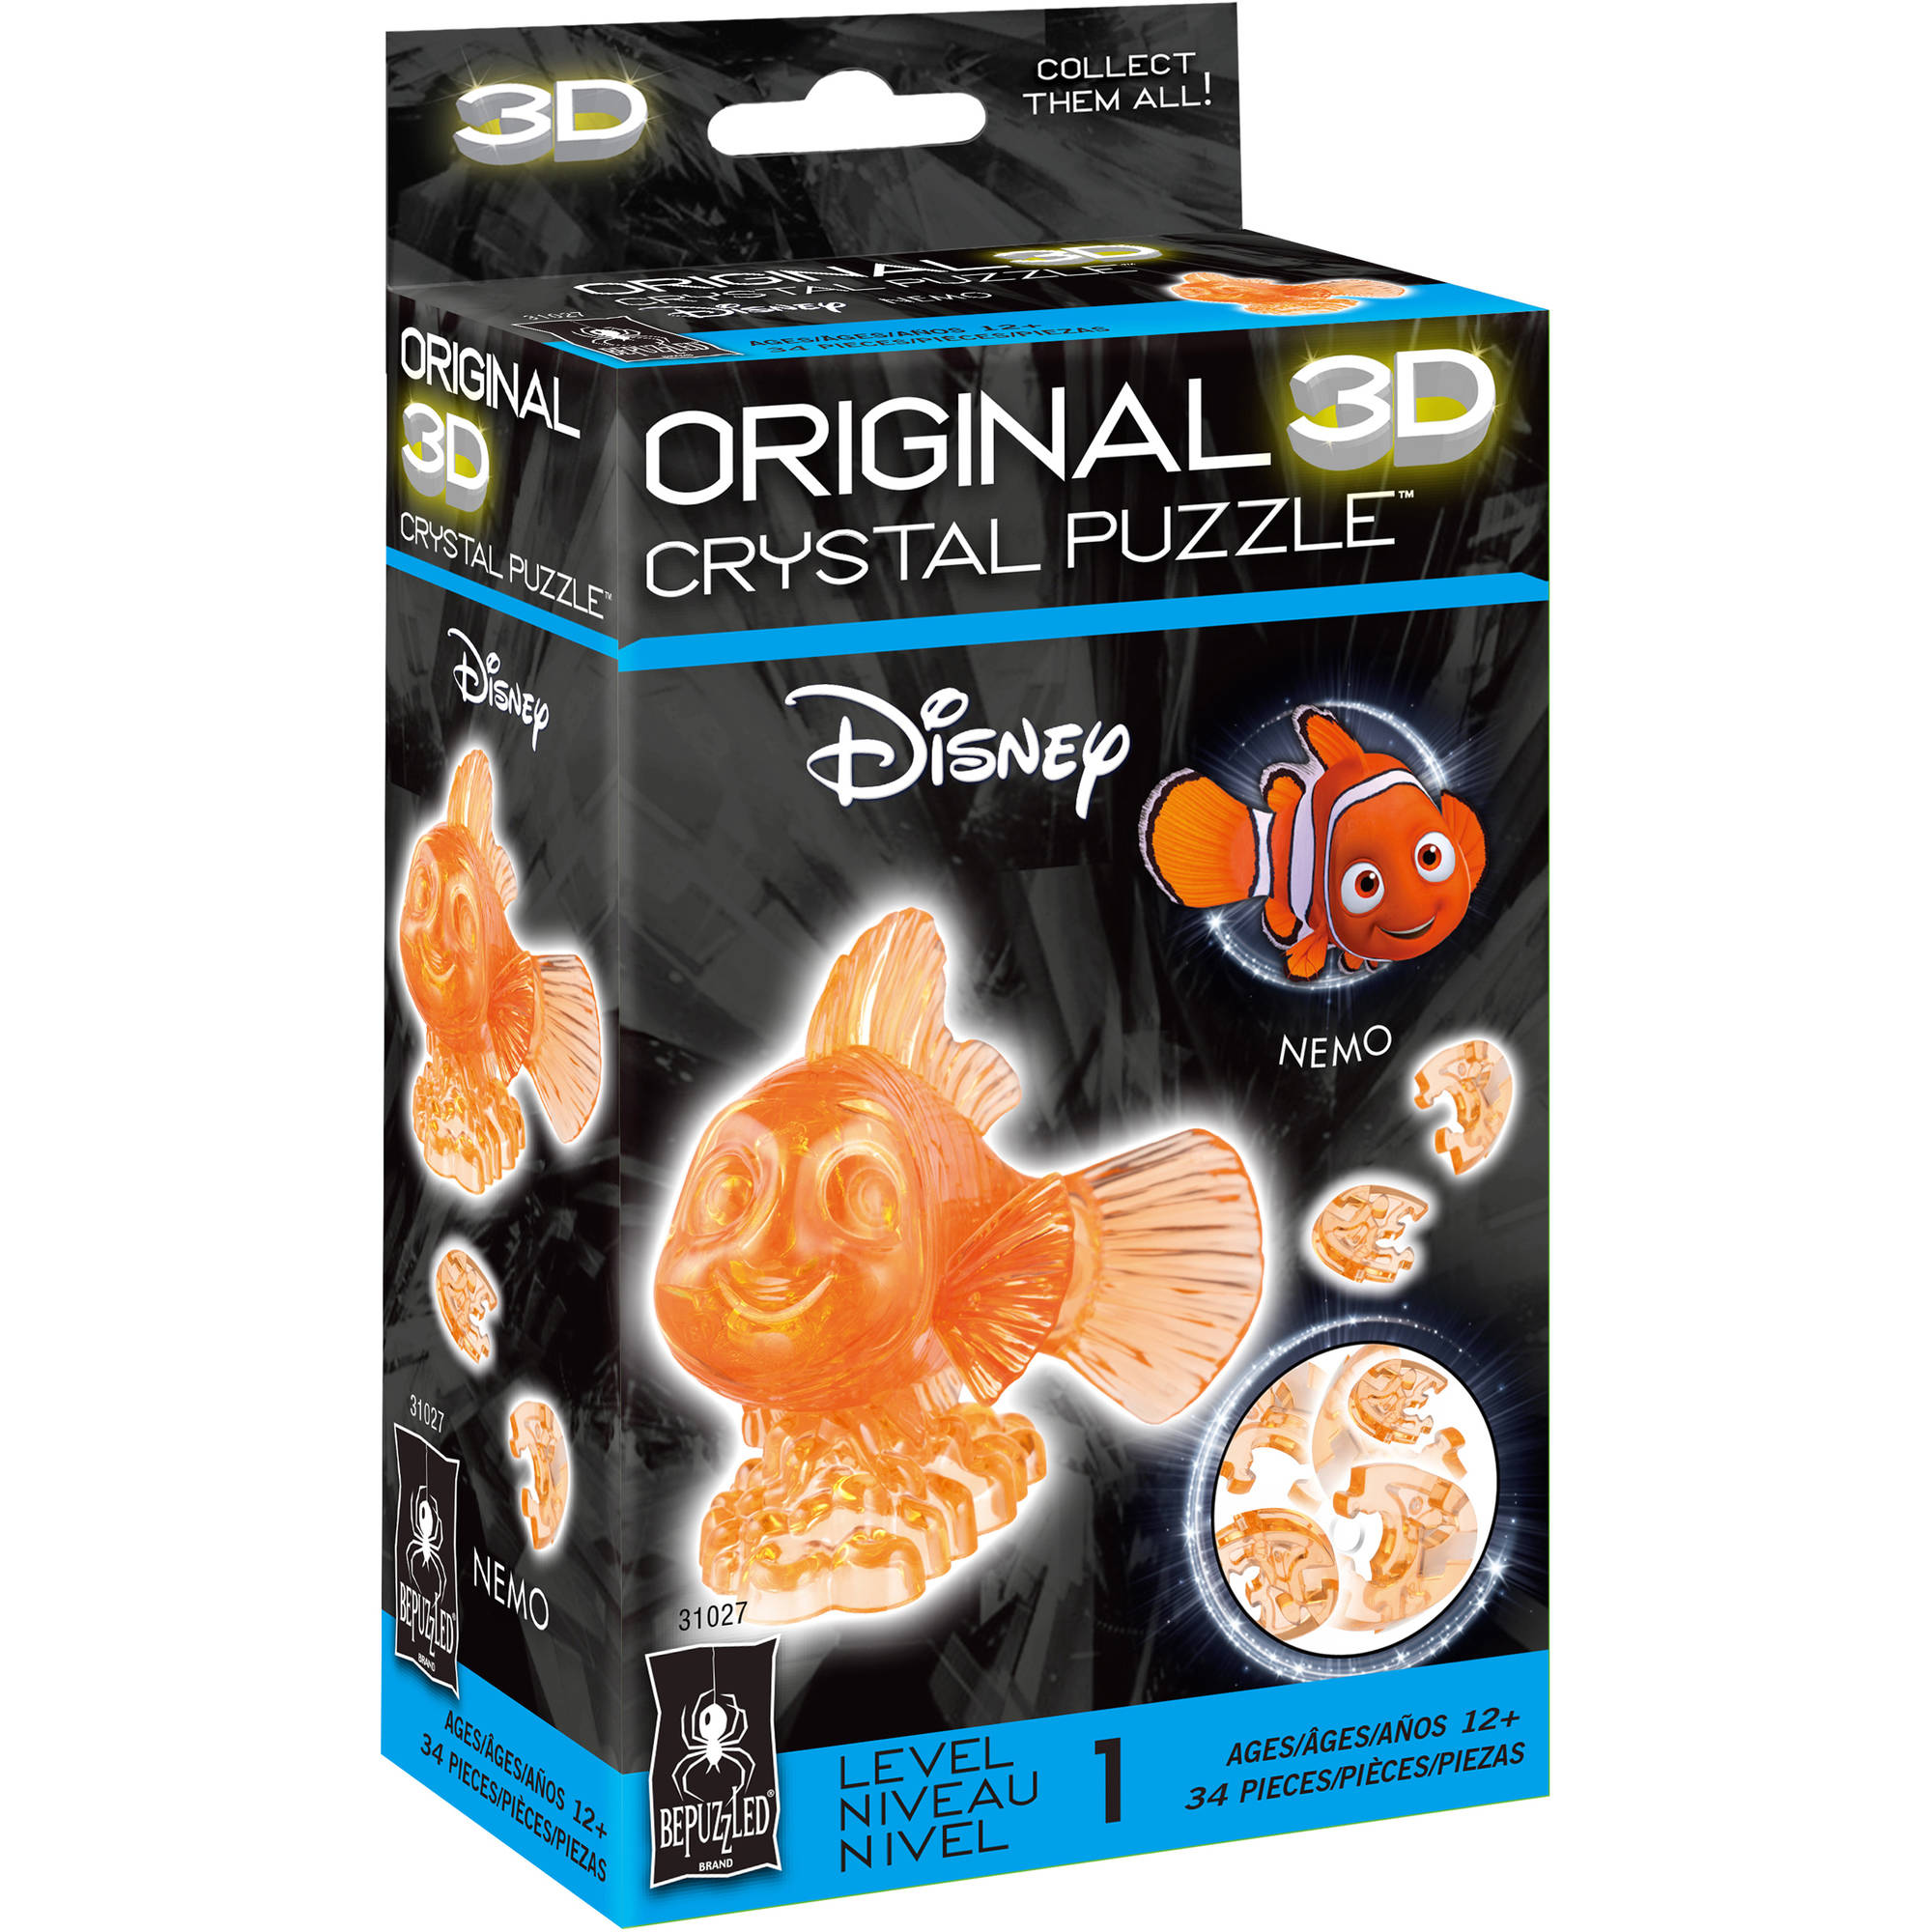 BePuzzled 3D Crystal Puzzle - Disney Nemo: 34 Pcs